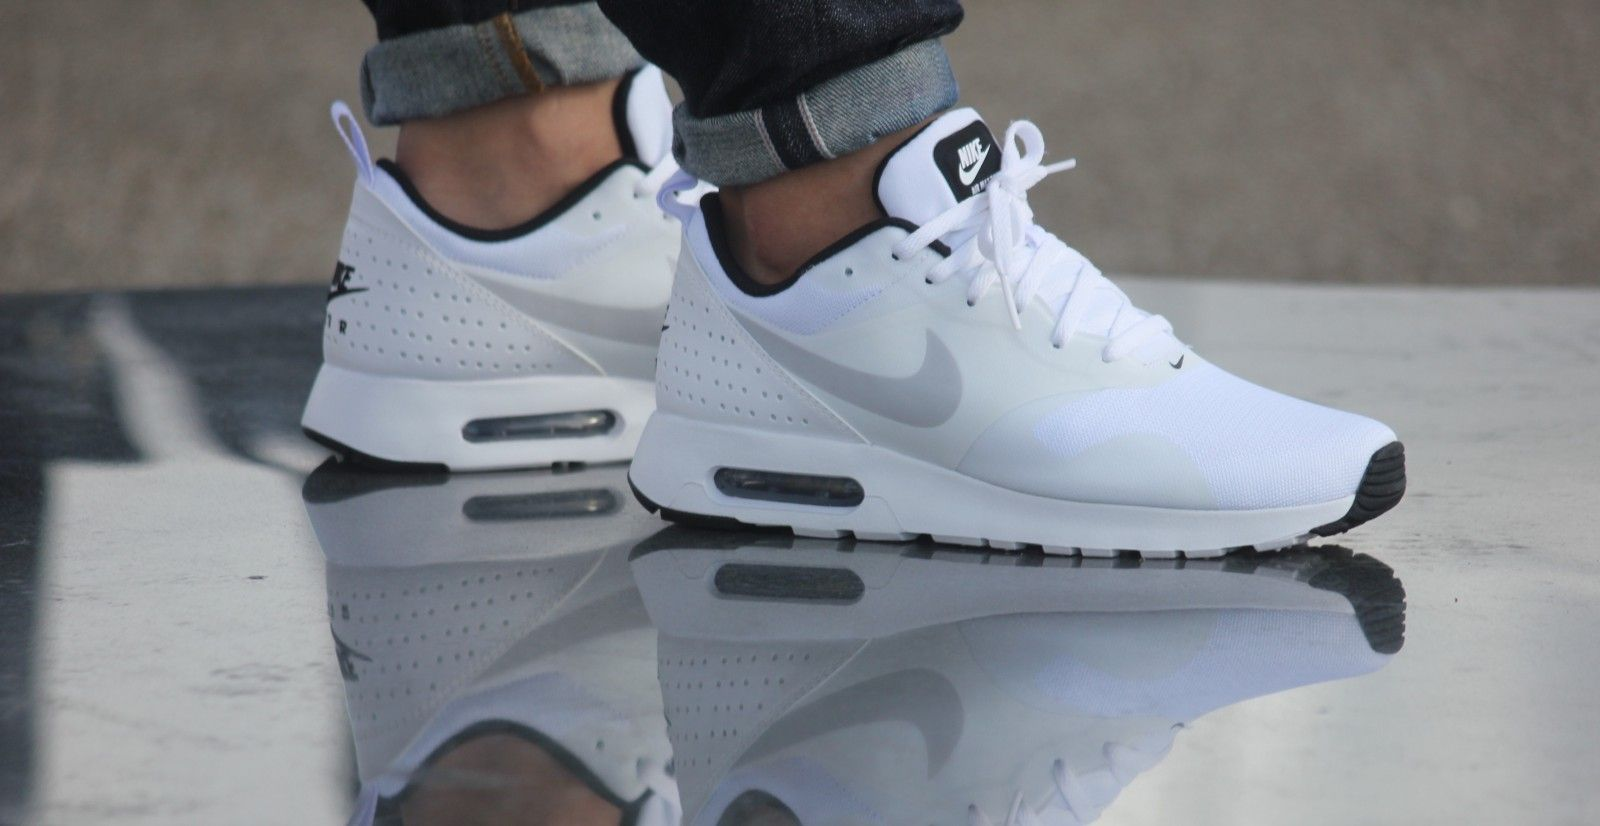 Nike Air Max Tavas White Pure Platinum Black 705149 103